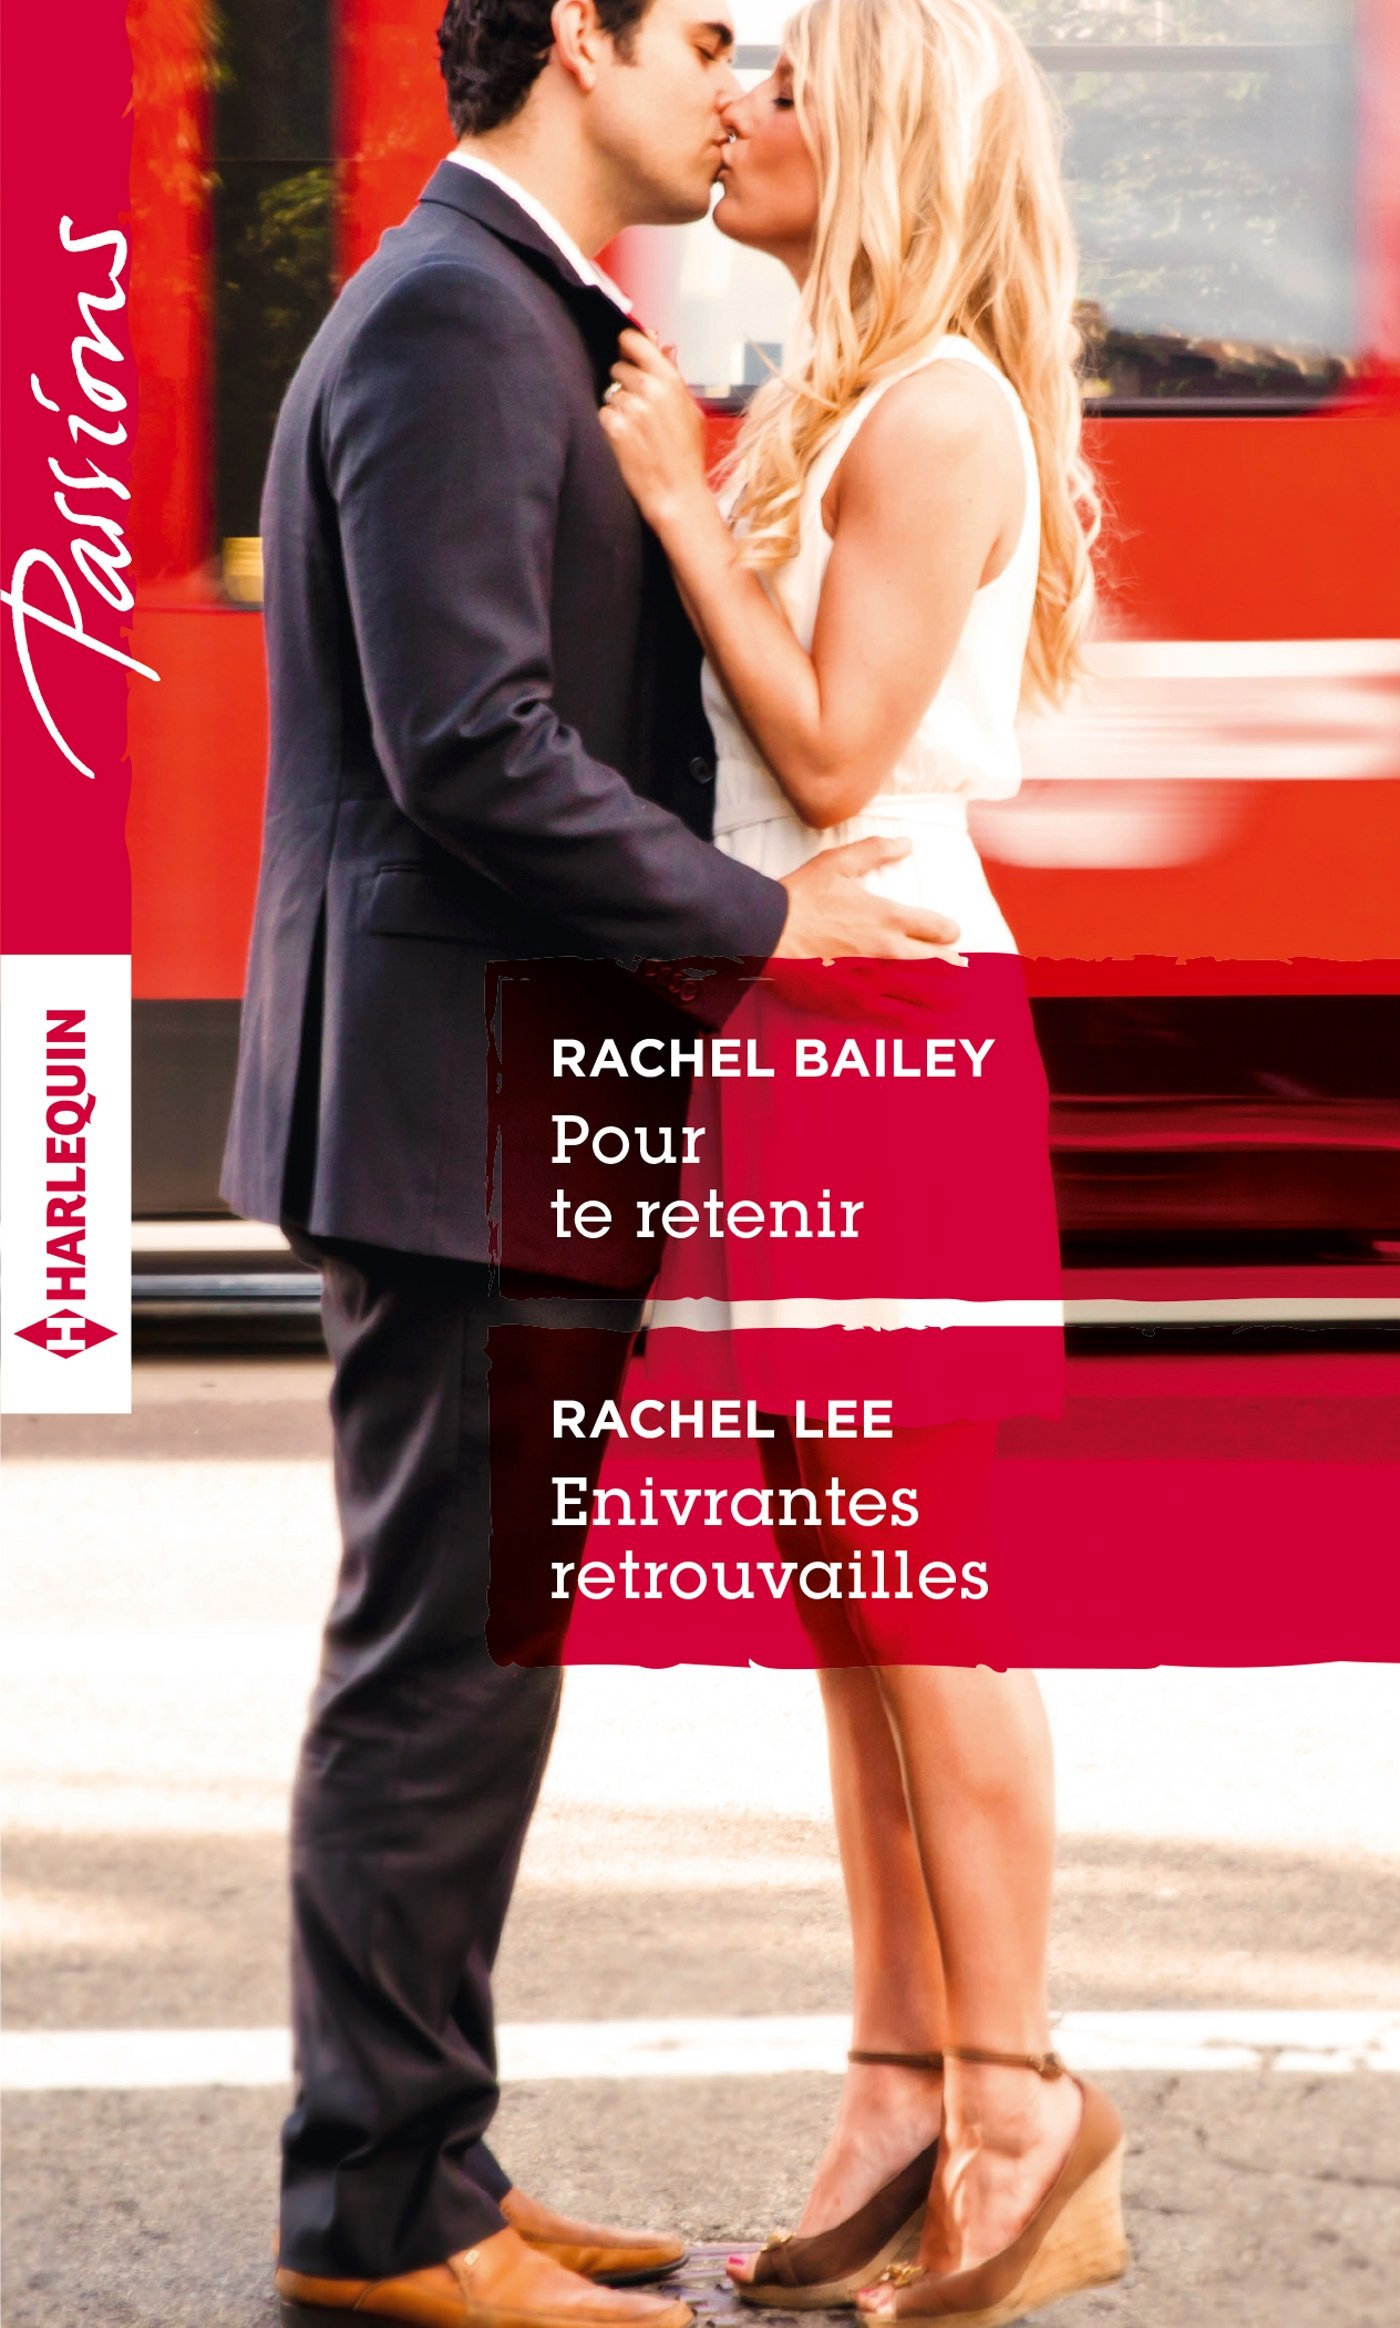 [Complète-rom/passions] Hawke Brothers - Rachel Bailey